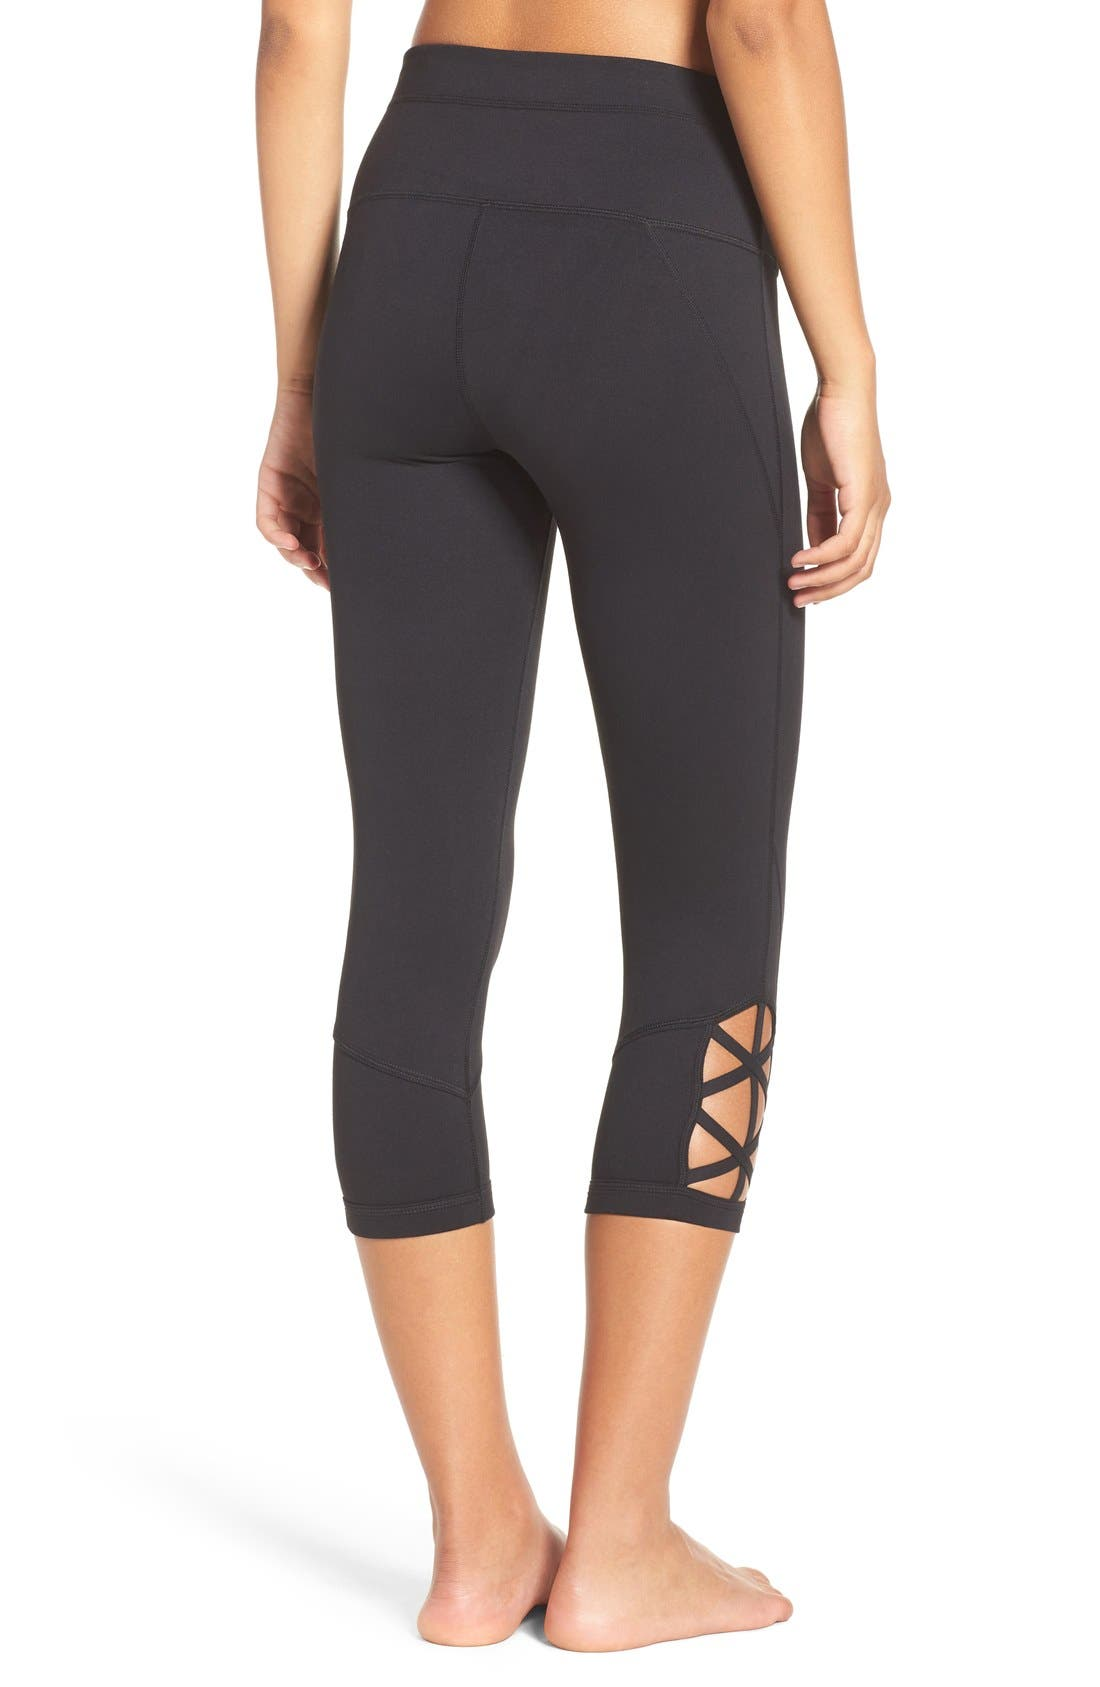 Alternate Image 2  - Zella 'Midnight' High Waist Crop Leggings